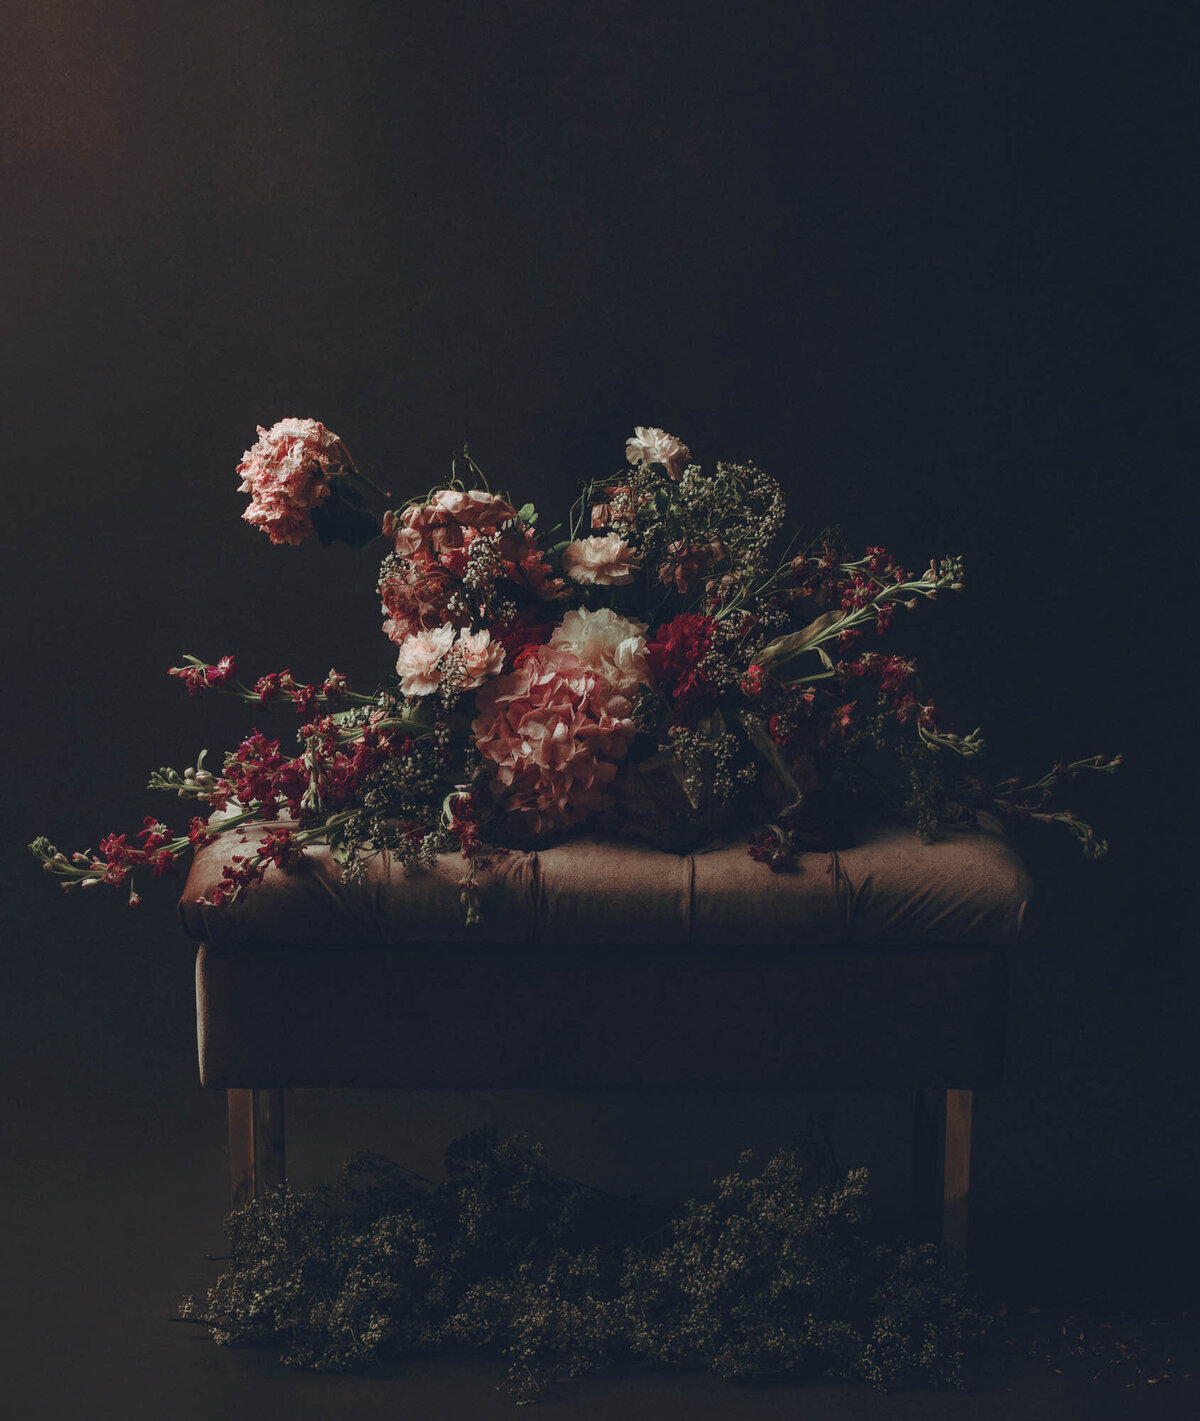 Flowers on a sofa seat.